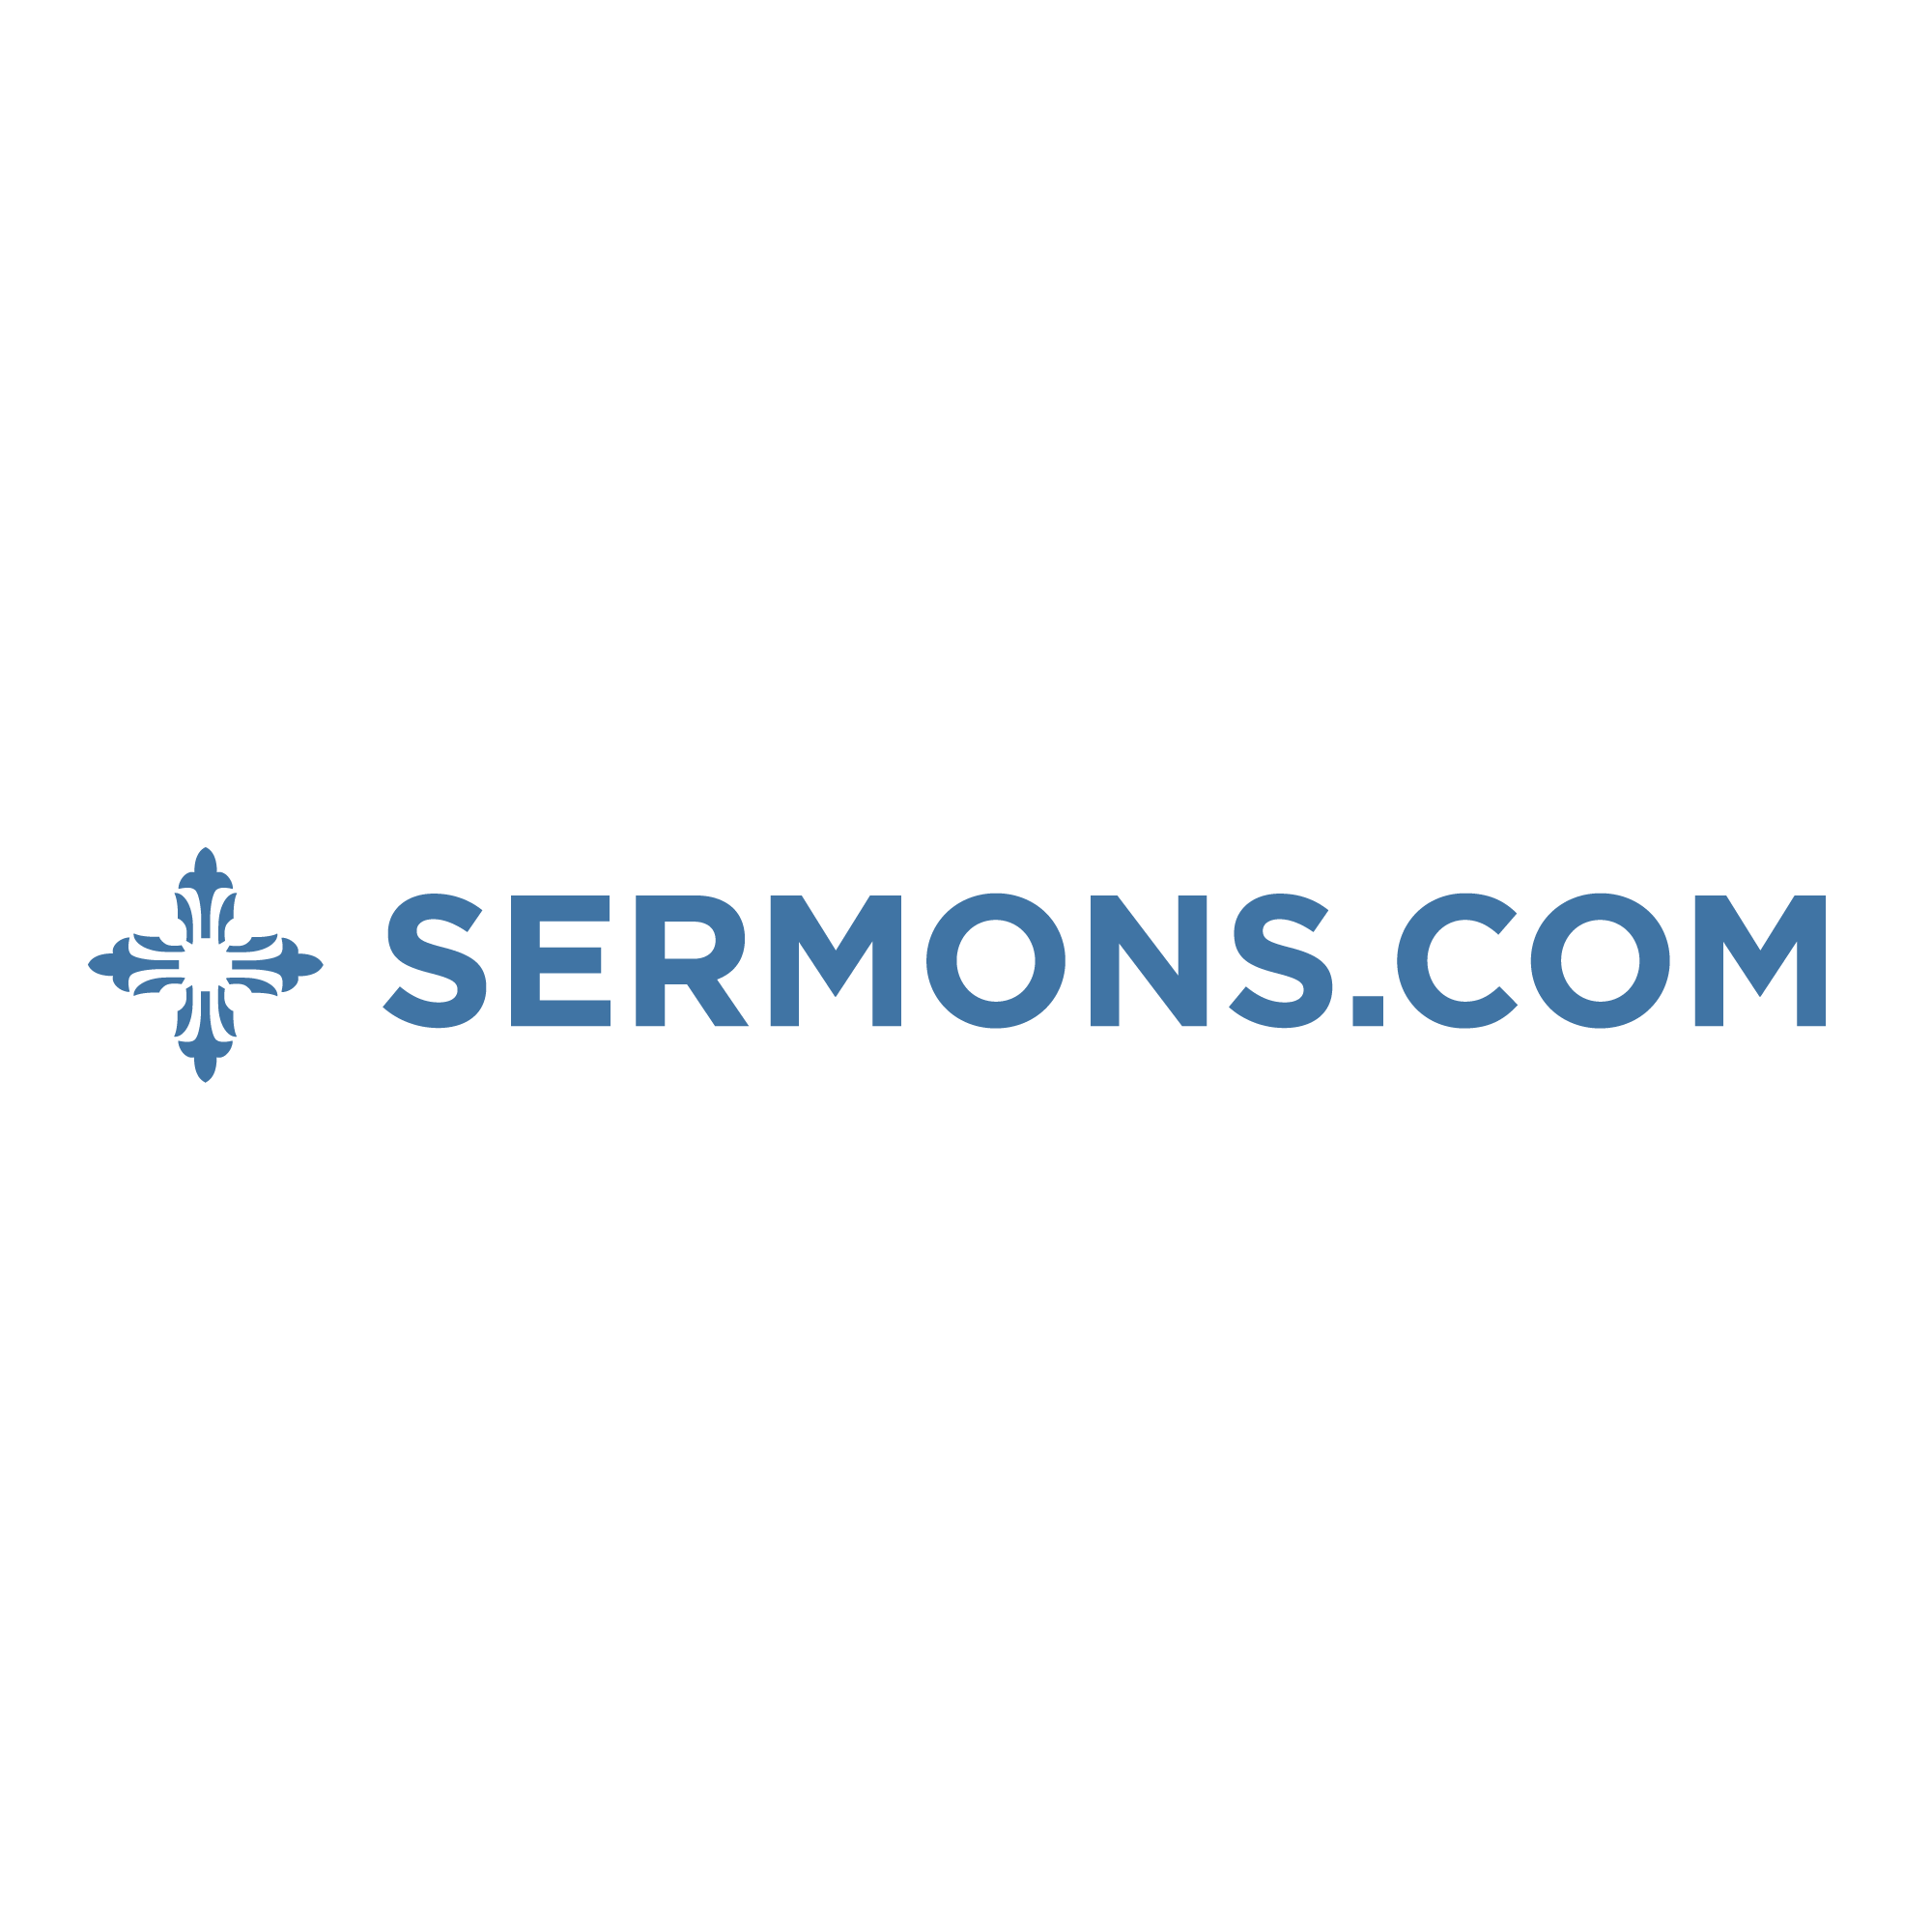 Sermon and Worship Resources